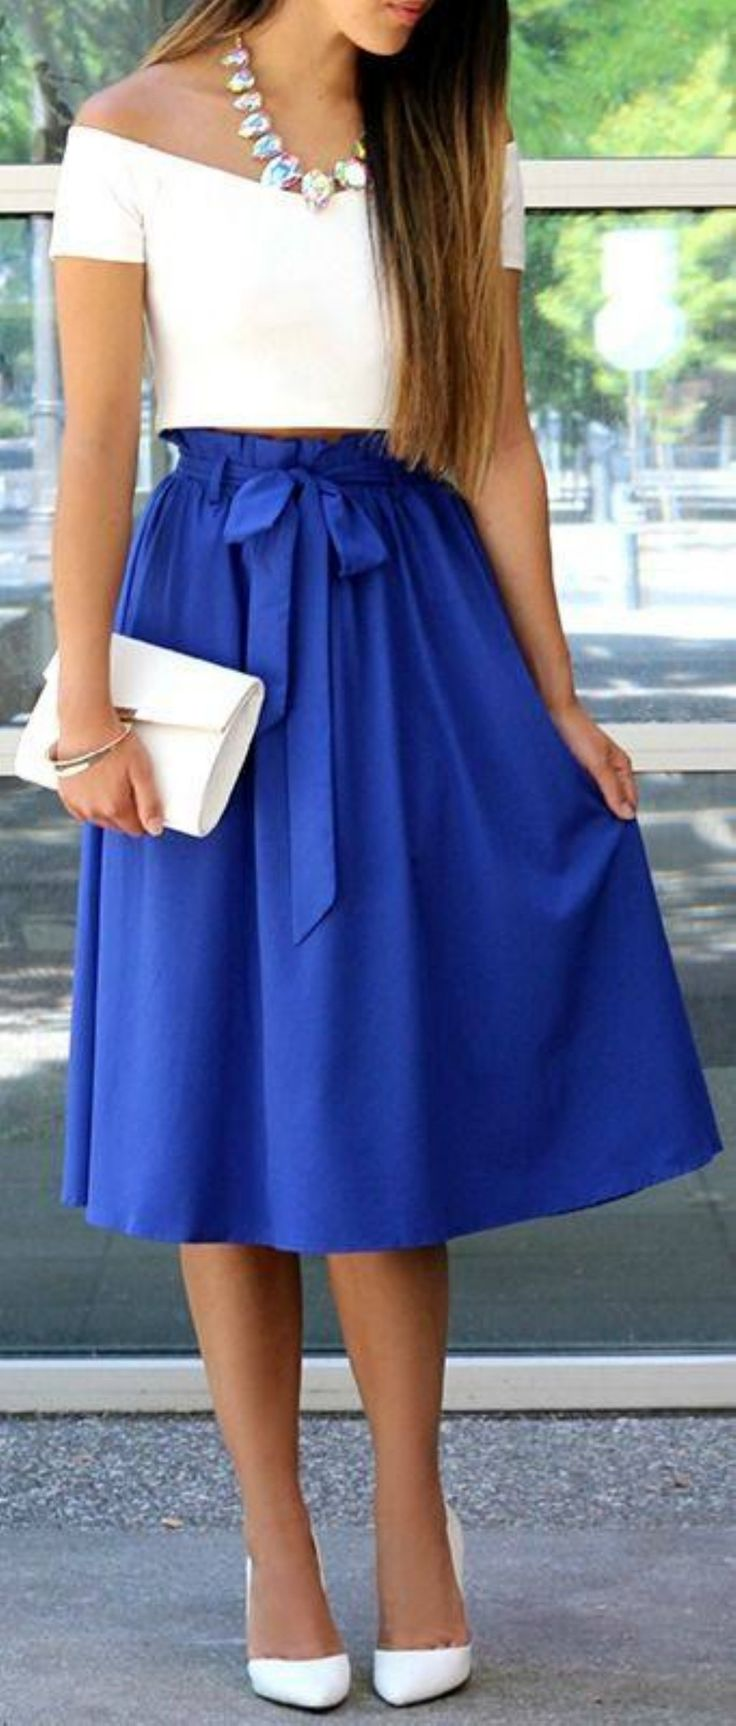 Gorgeous 29 Pretty Cobalt Blue Skirt Outfits for Fashionable Ladies from http://www.fashionetter.com/2017/04/12/pretty-cobalt-blue-skirt-outfits-for-fashionable-ladies/